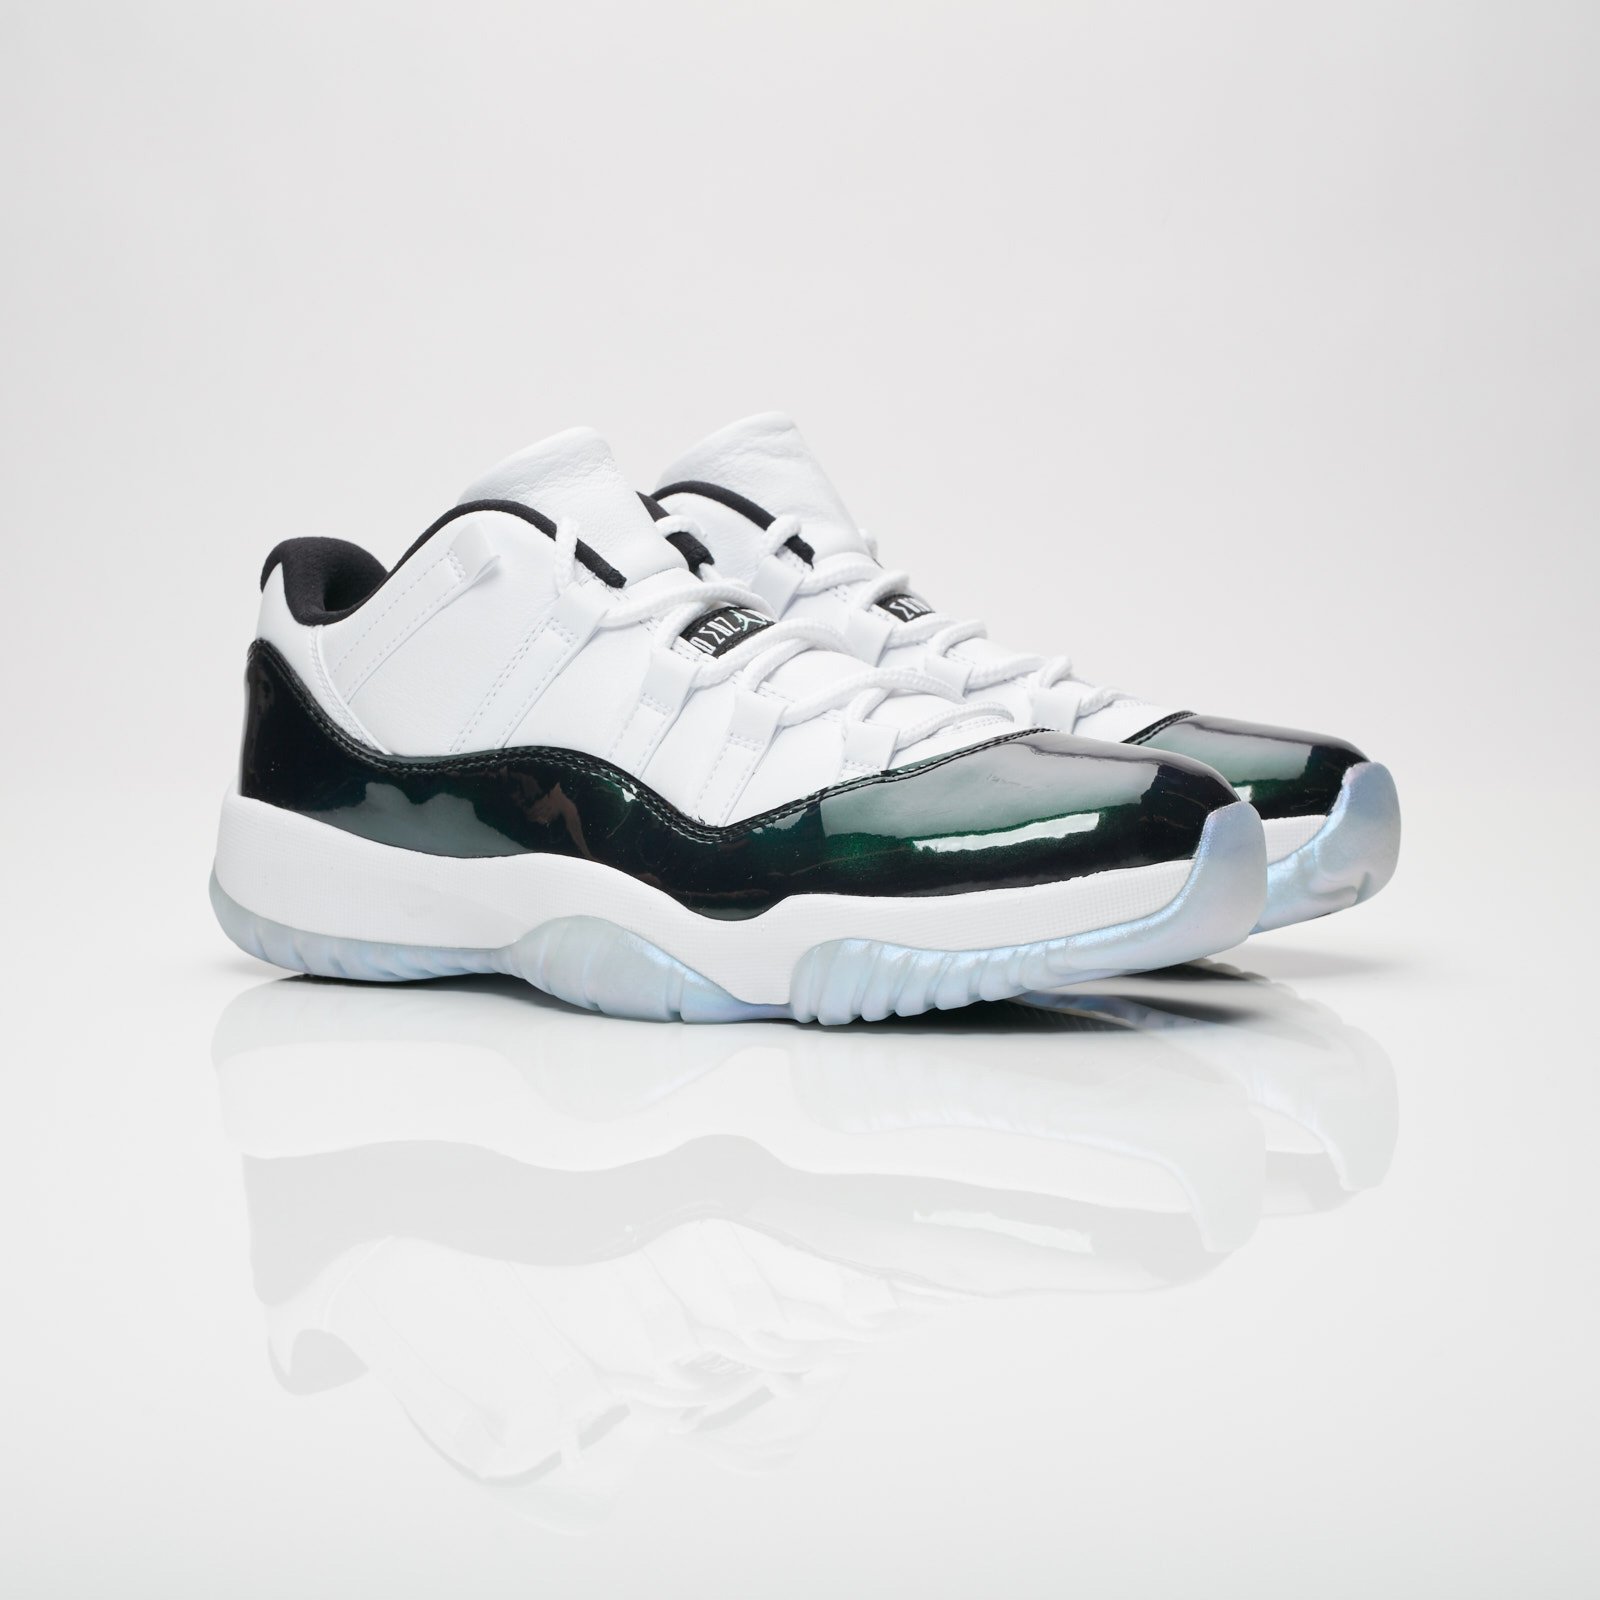 big sale 68dfb f3700 Jordan Brand Air Jordan 11 Retro Low